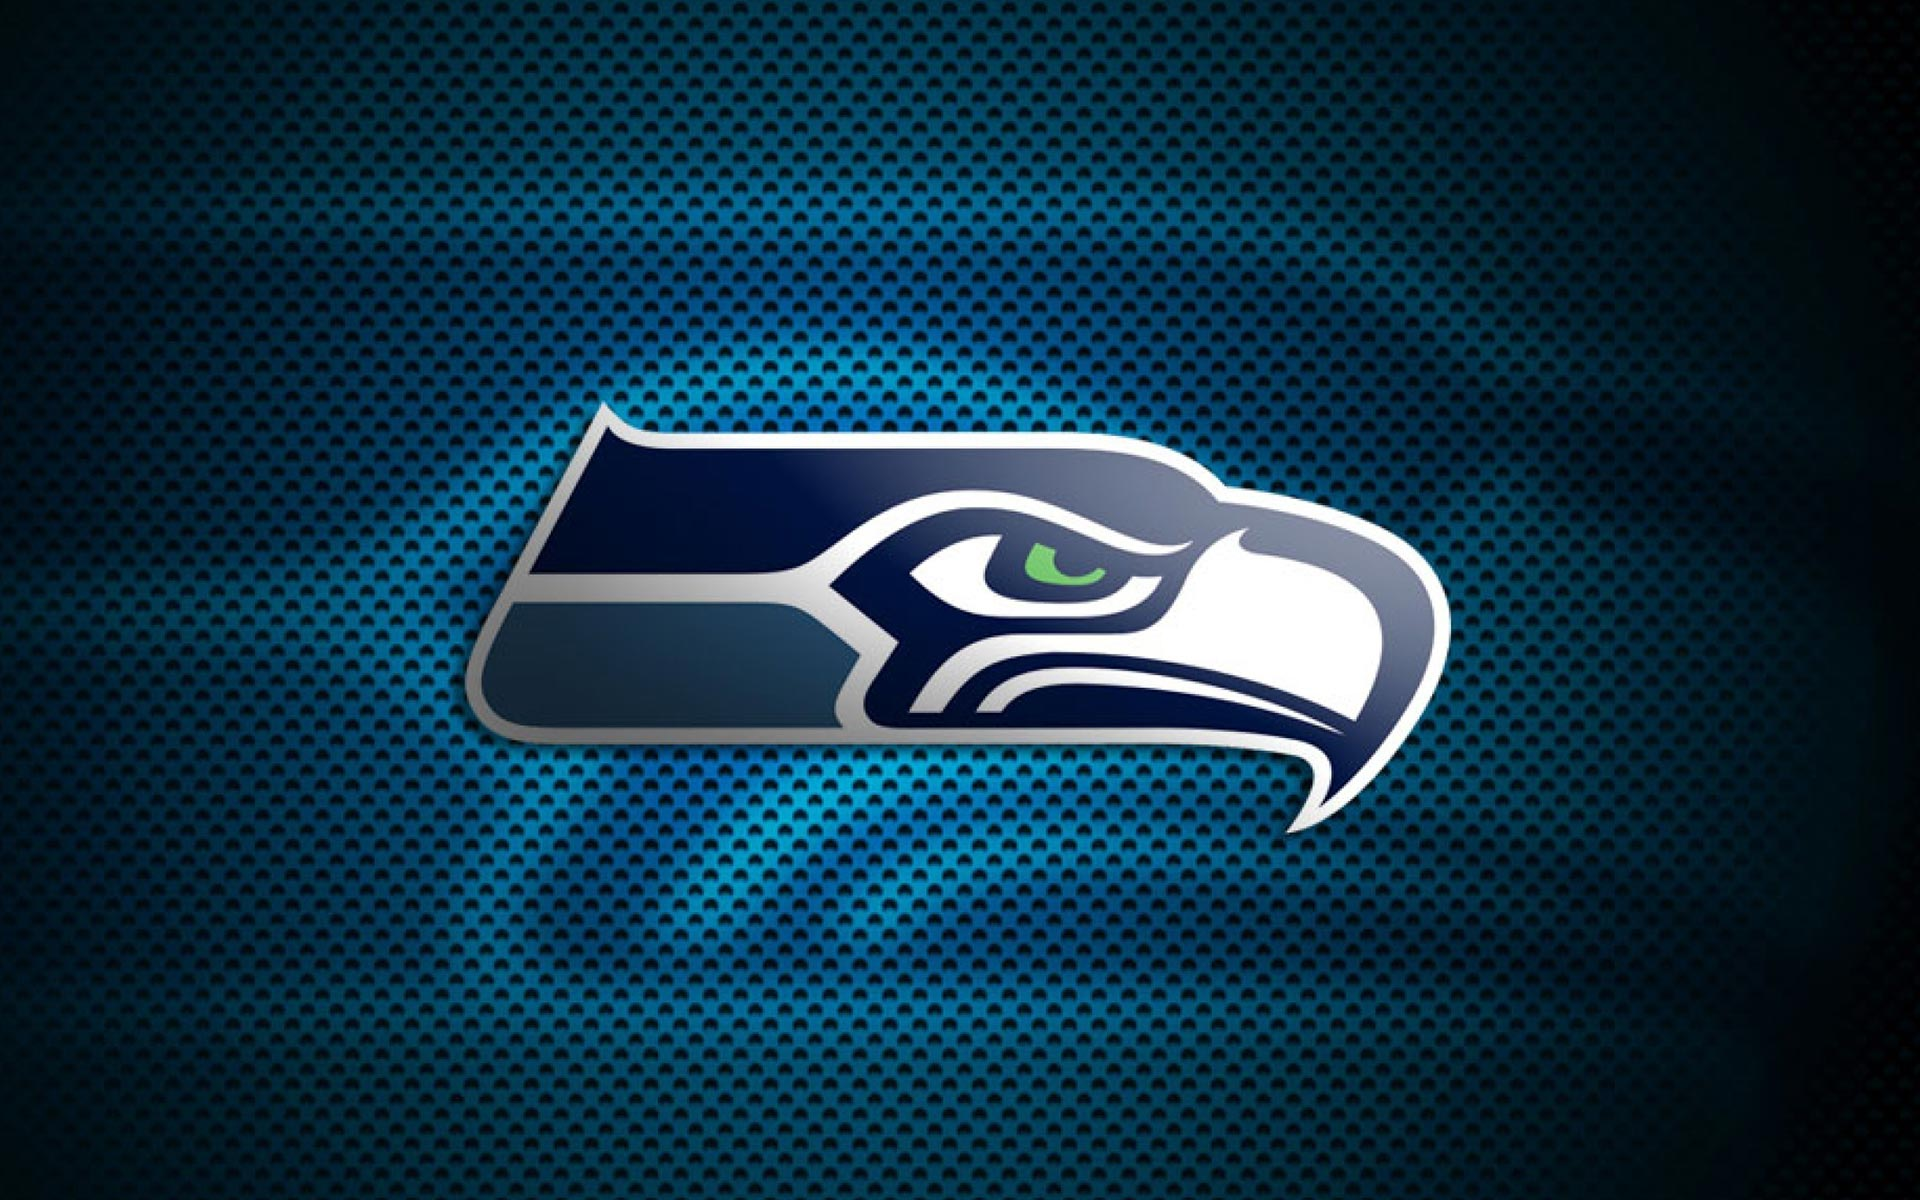 Fonds d'ecran de Seattle Seahawks 28